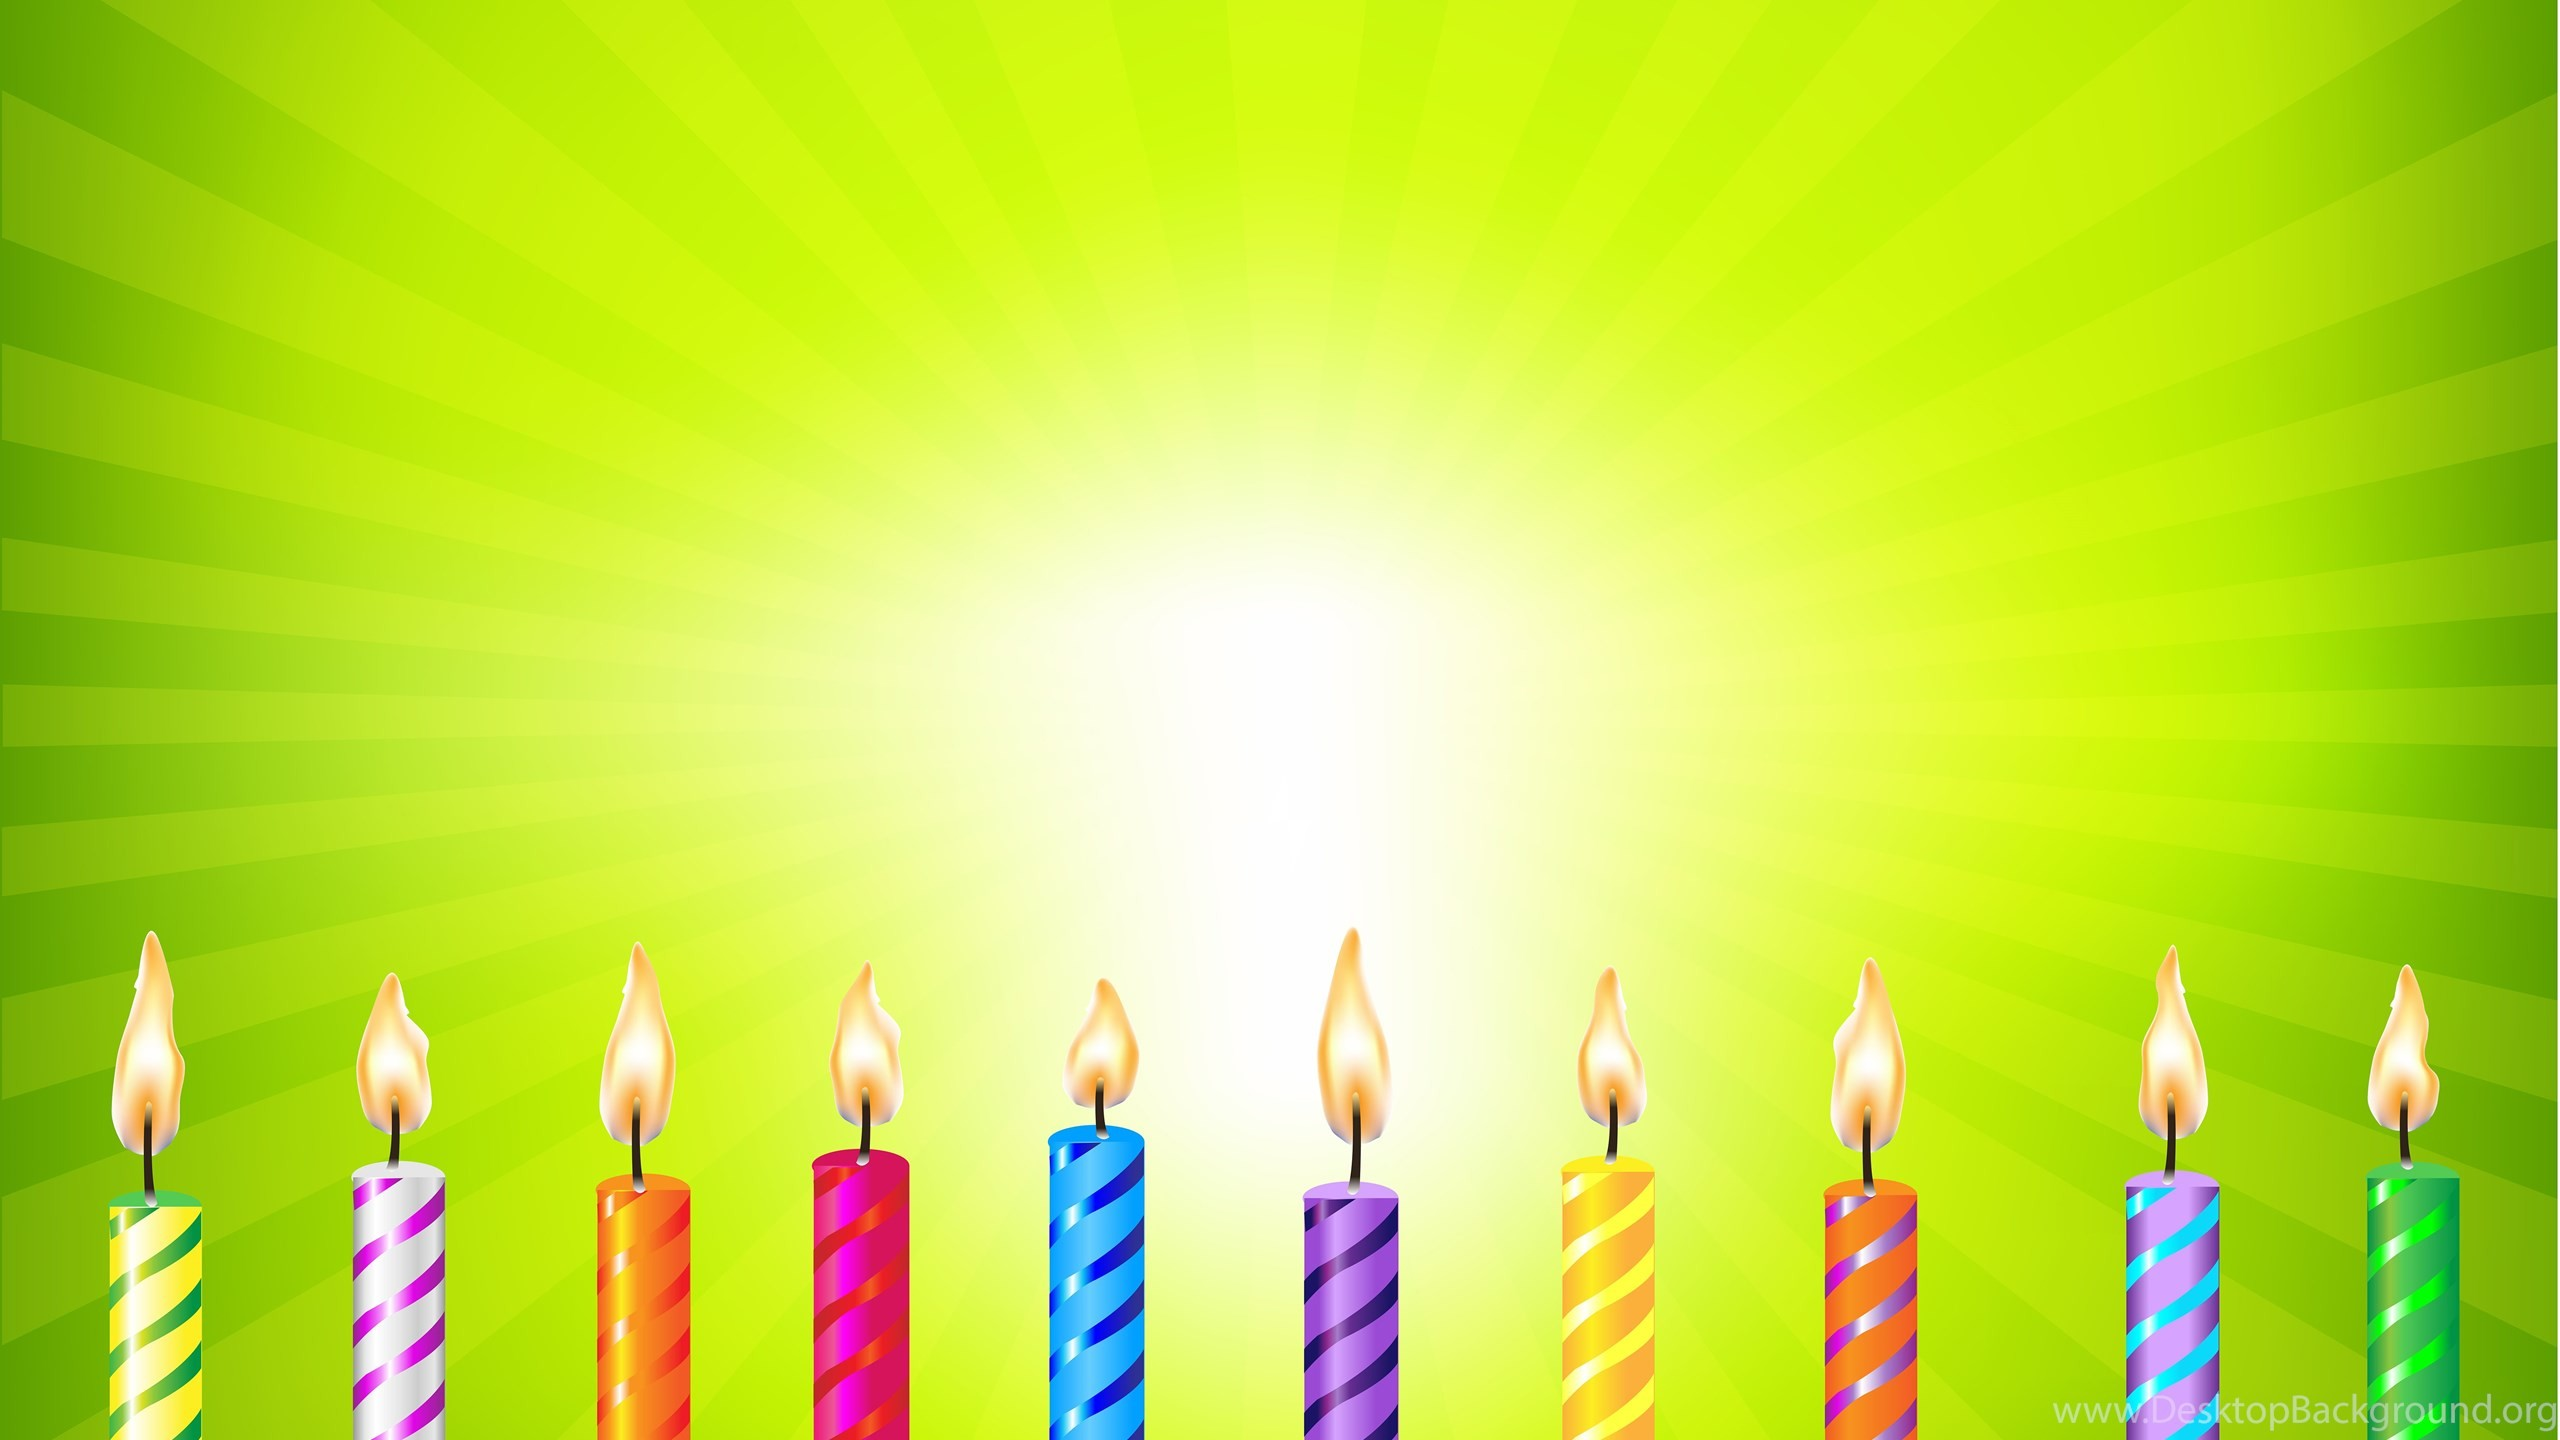 Colourful Wallpapers With Quotes Birthday Desktop Backgrounds 183 ① Wallpapertag